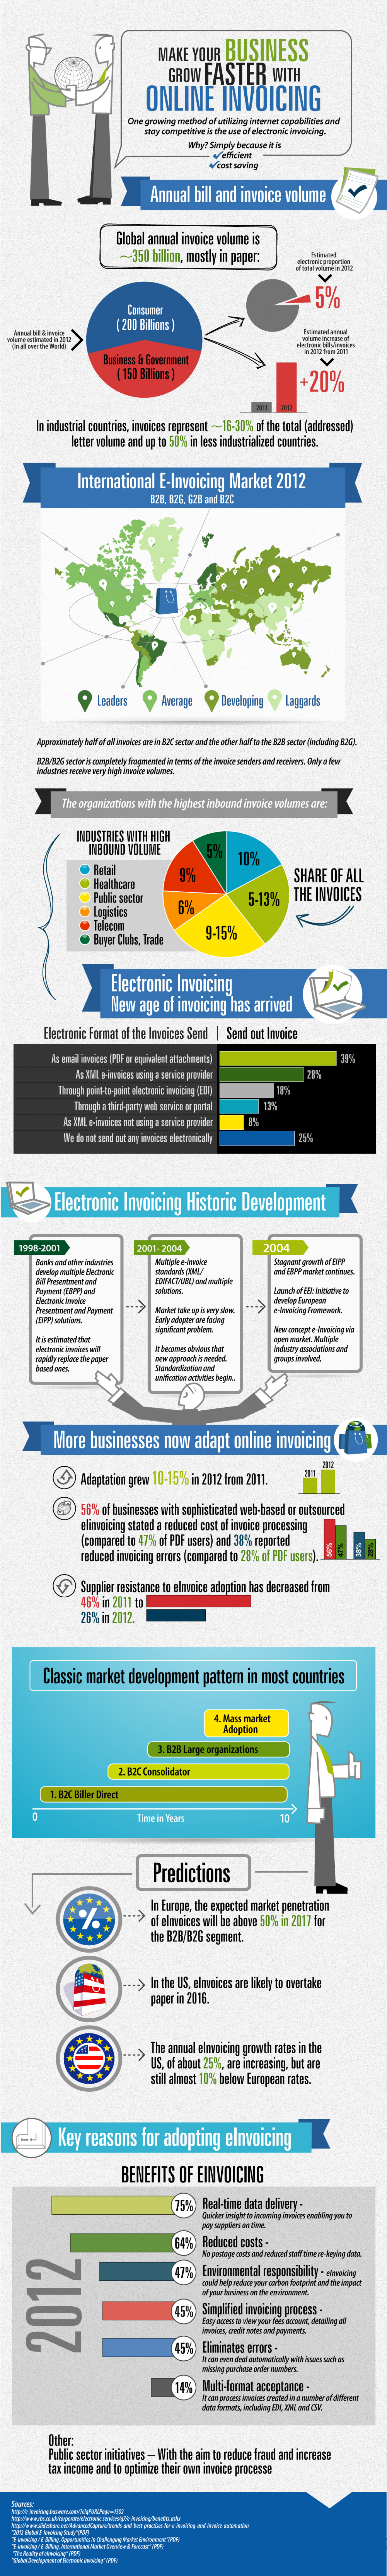 Online Invoicing Will Make Your Business Grow Fast  Infographic